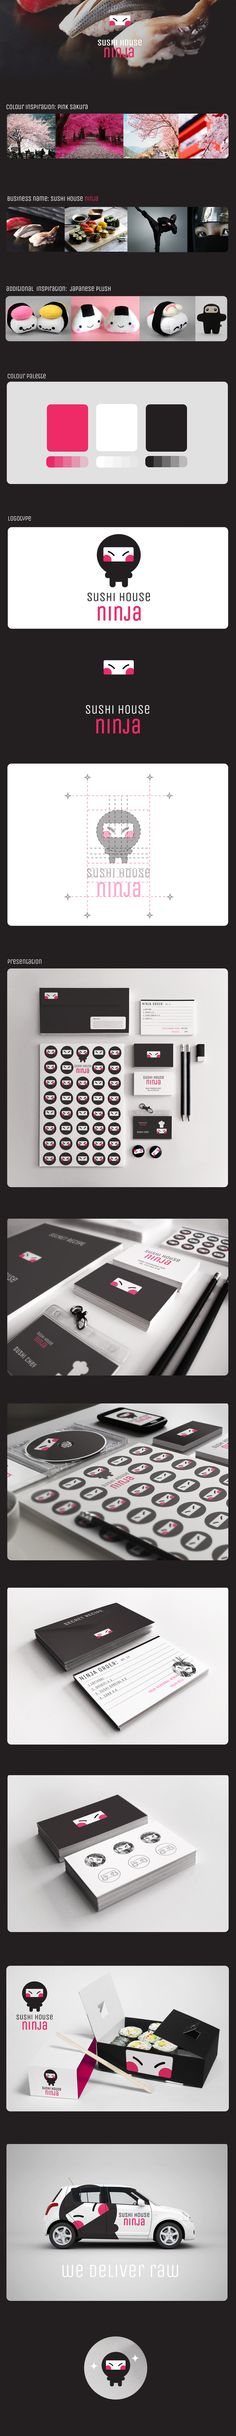 Sushi House Ninja by Cosa Nostra , via Behance